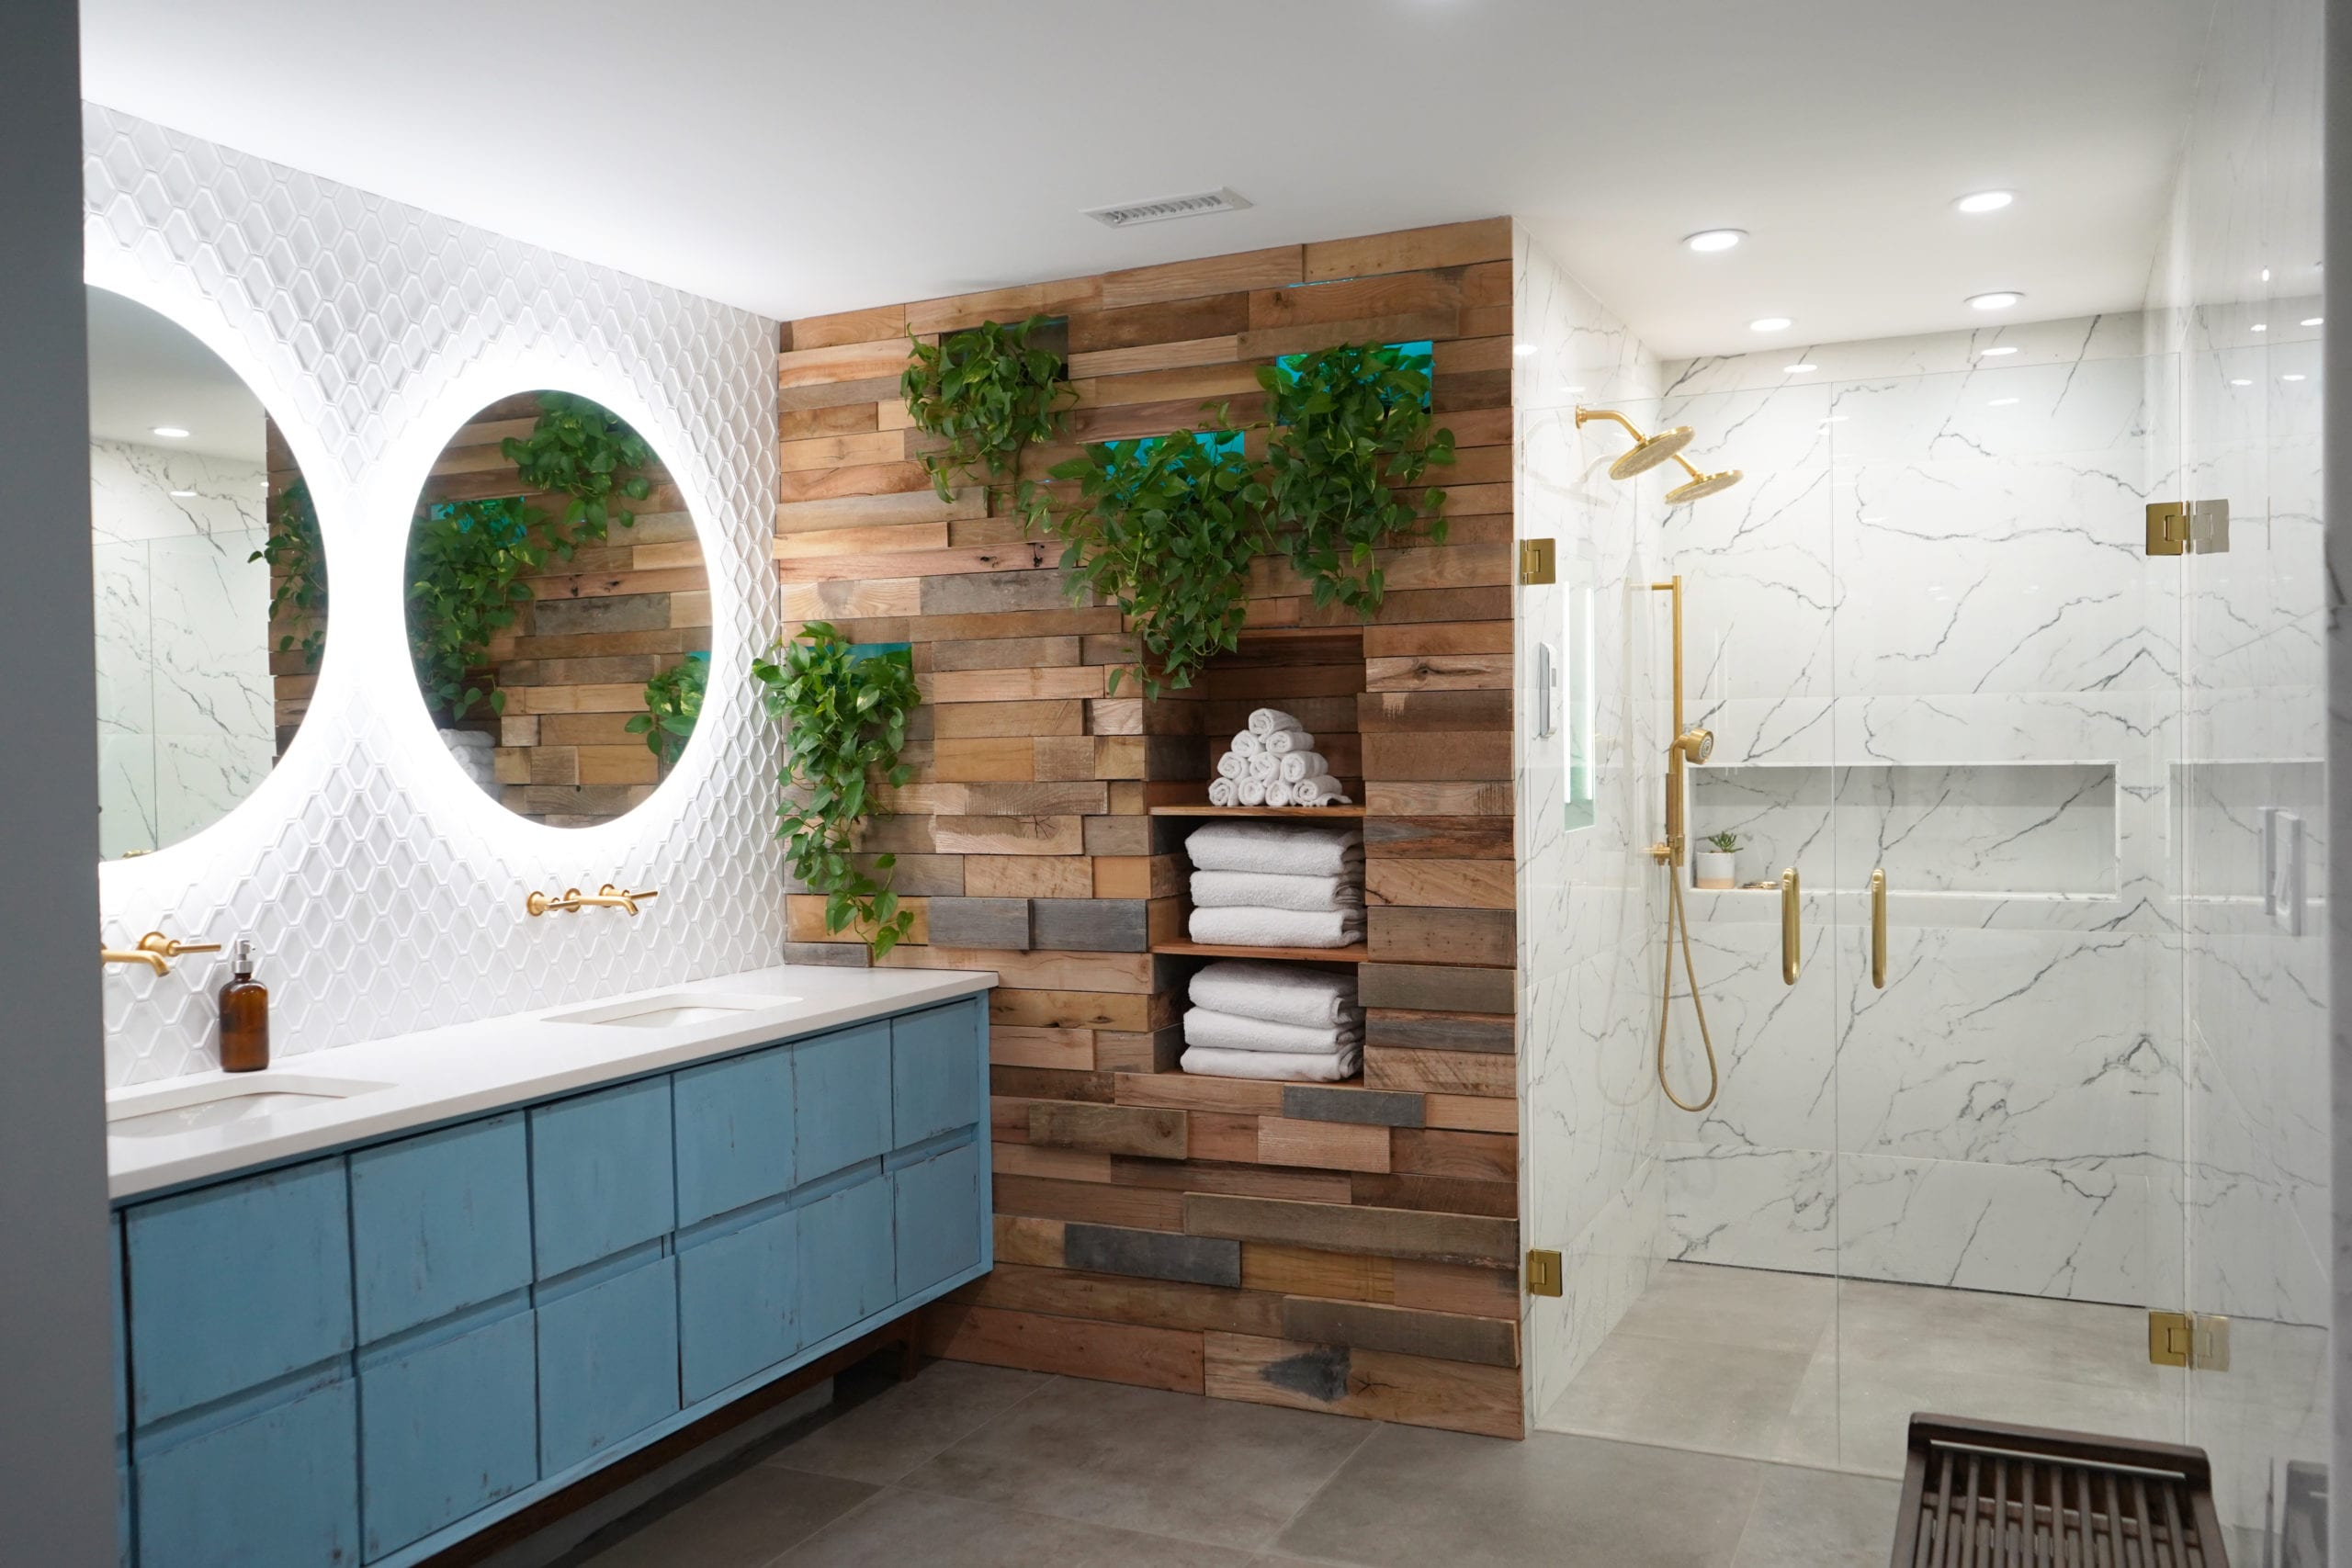 Bathroom Remodel in Atlanta with contemporary vanity, marble tile, walk in shower, gold shower, gold faucets, wood wall, white tile, round mirrors.